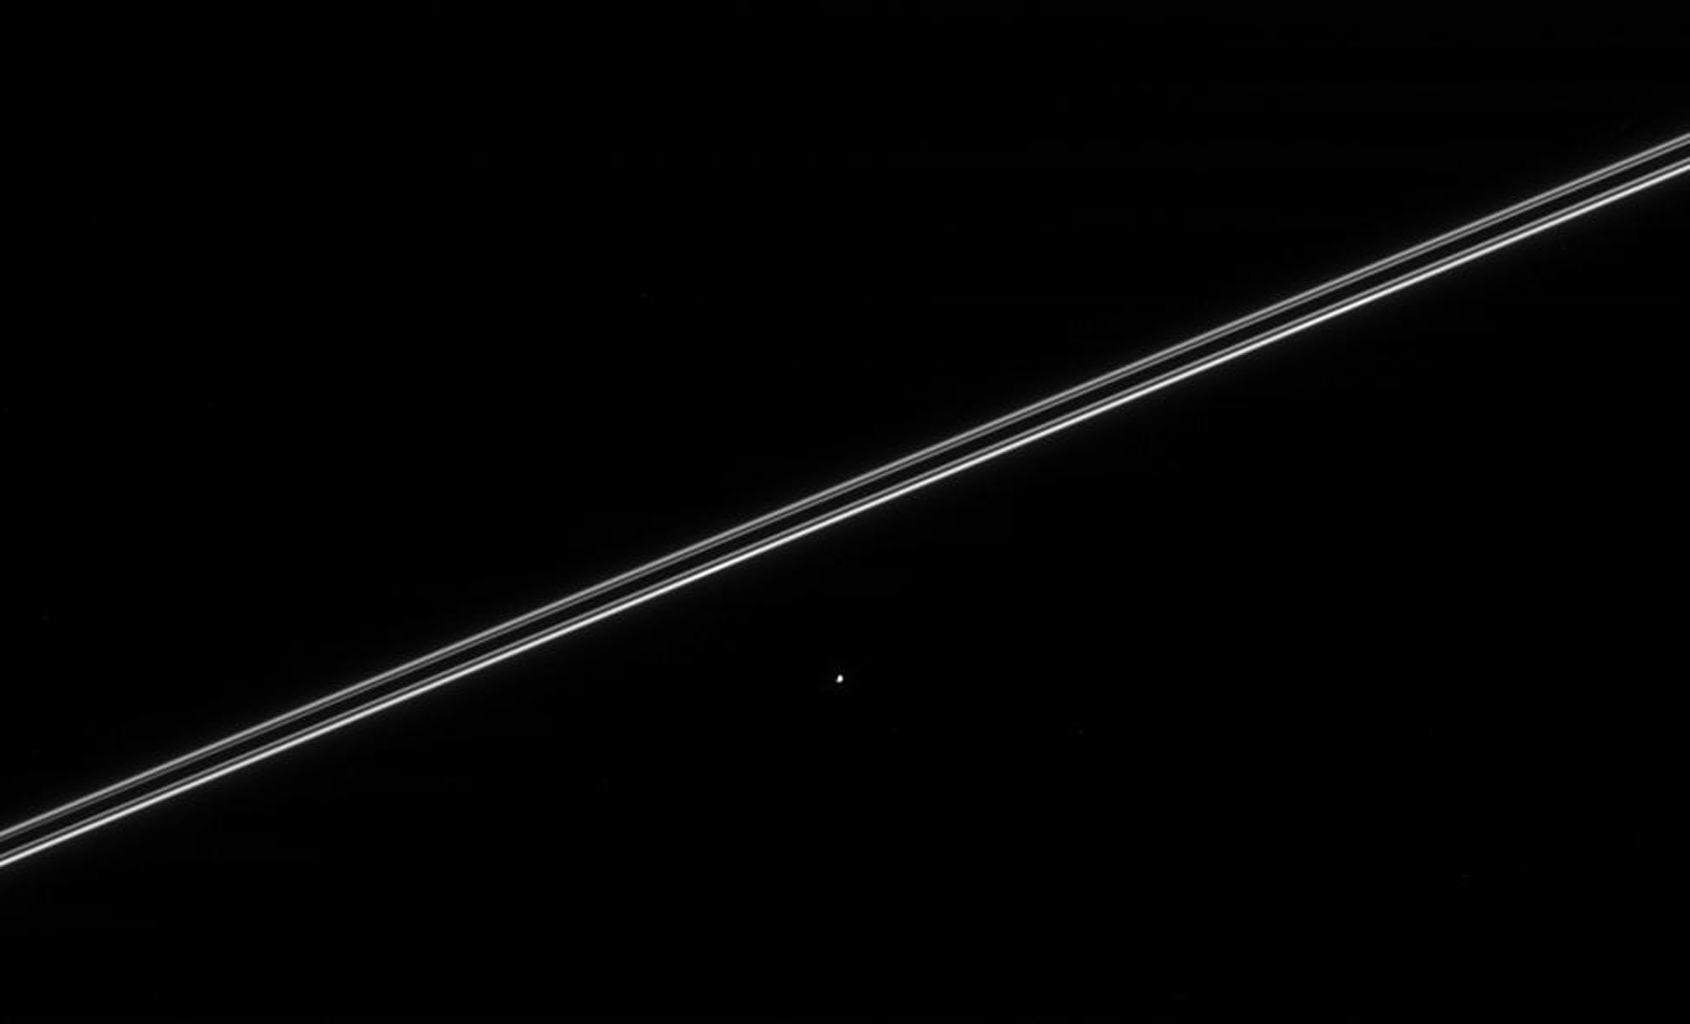 Saturn's moon Helene, seen here with Saturn's nearly edge-on rings, orbits 60 degrees ahead of Dione and is called a 'Trojan' moon. This image was taken in visible light with NASA's Cassini spacecraft's narrow-angle camera on March 12, 2005.